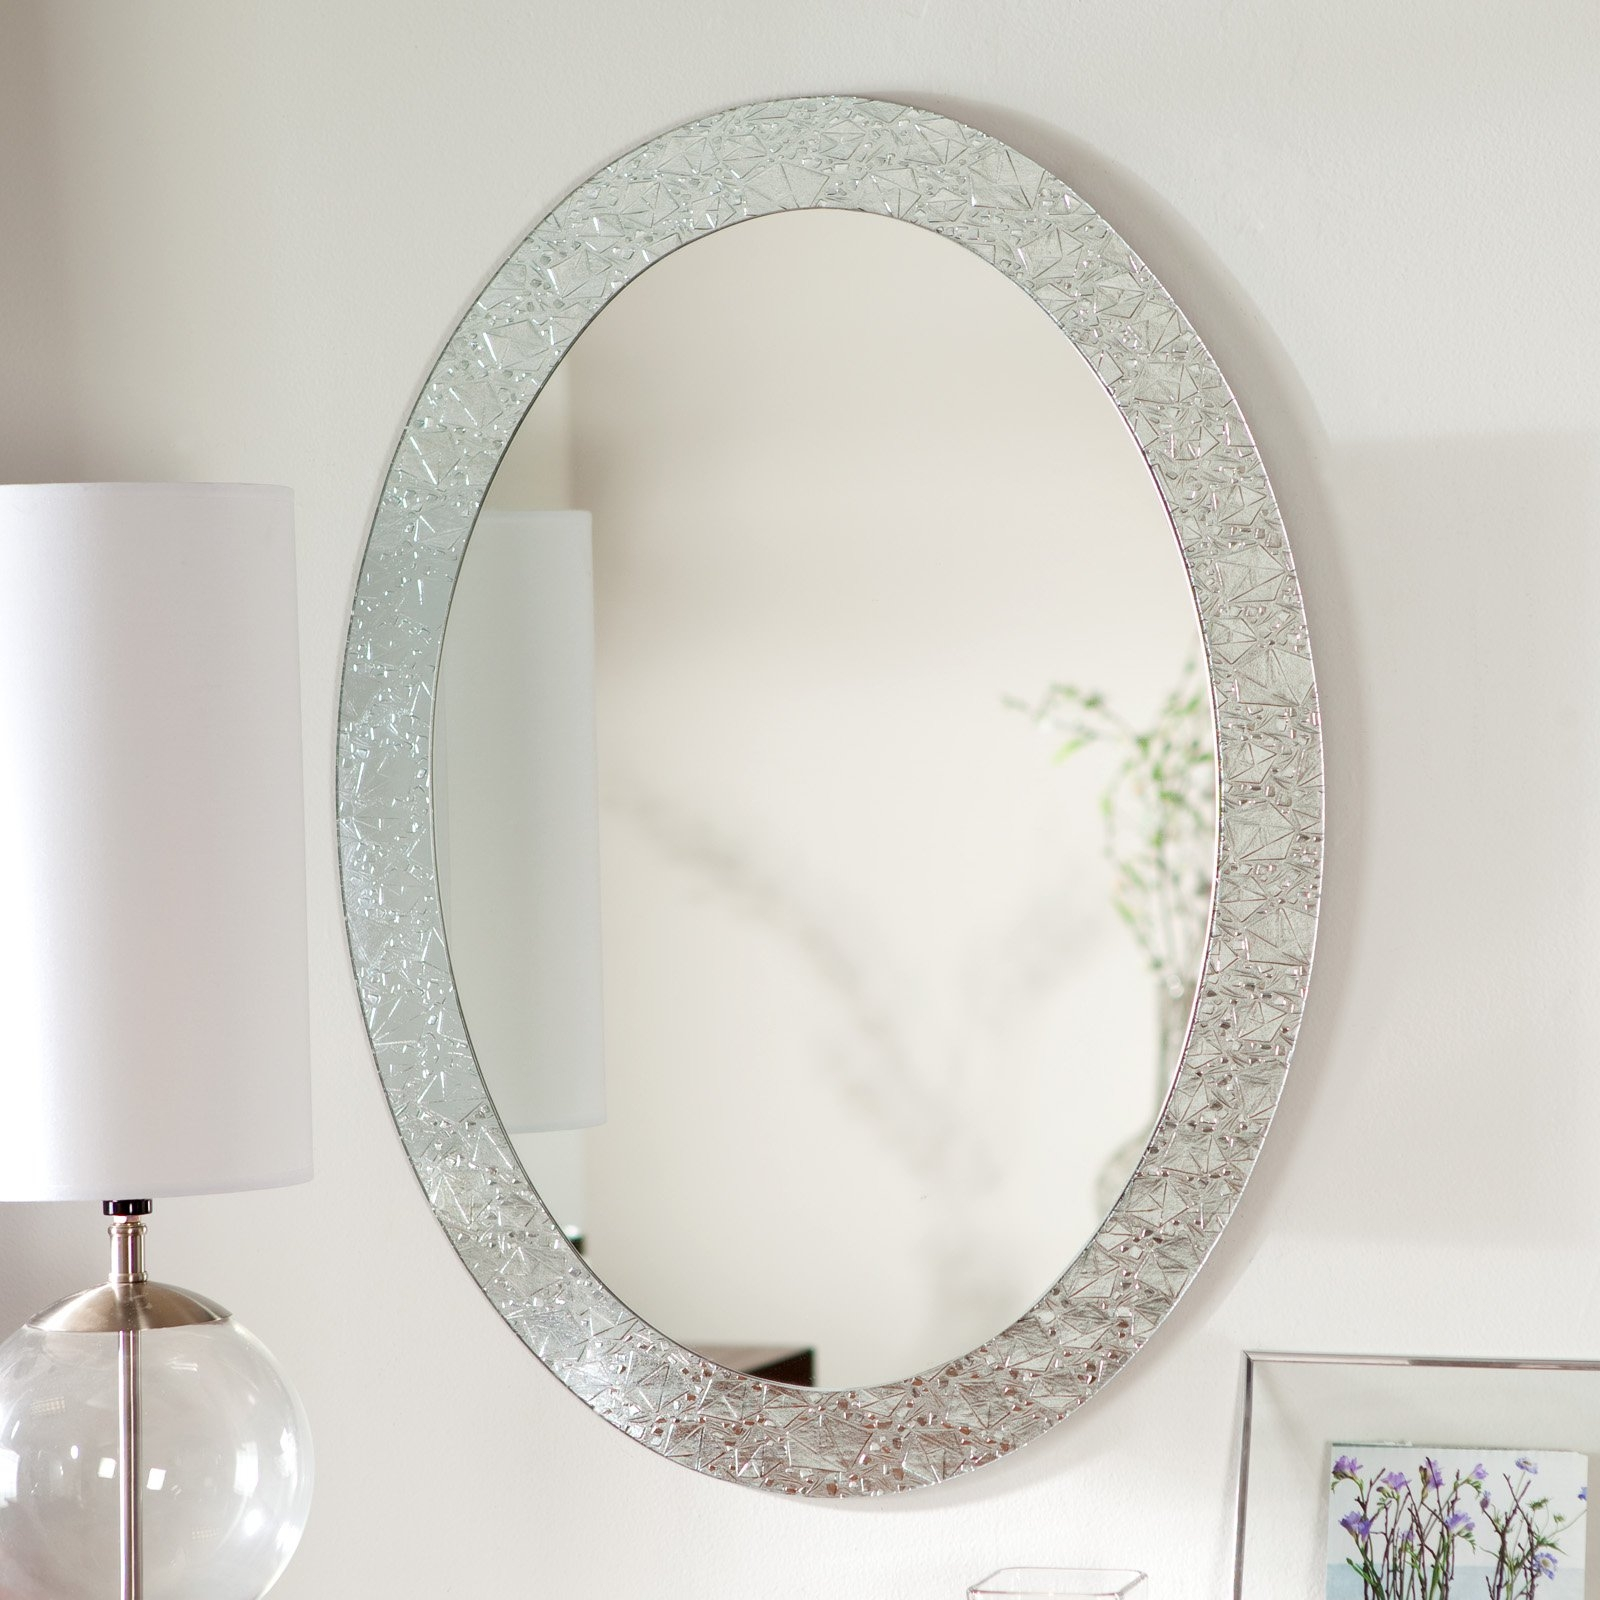 Large Crystal Wall Mirror Large Crystal Wall Mirror dcor wonderland frameless crystal wall mirror 235w x 315h in 1600 X 1600